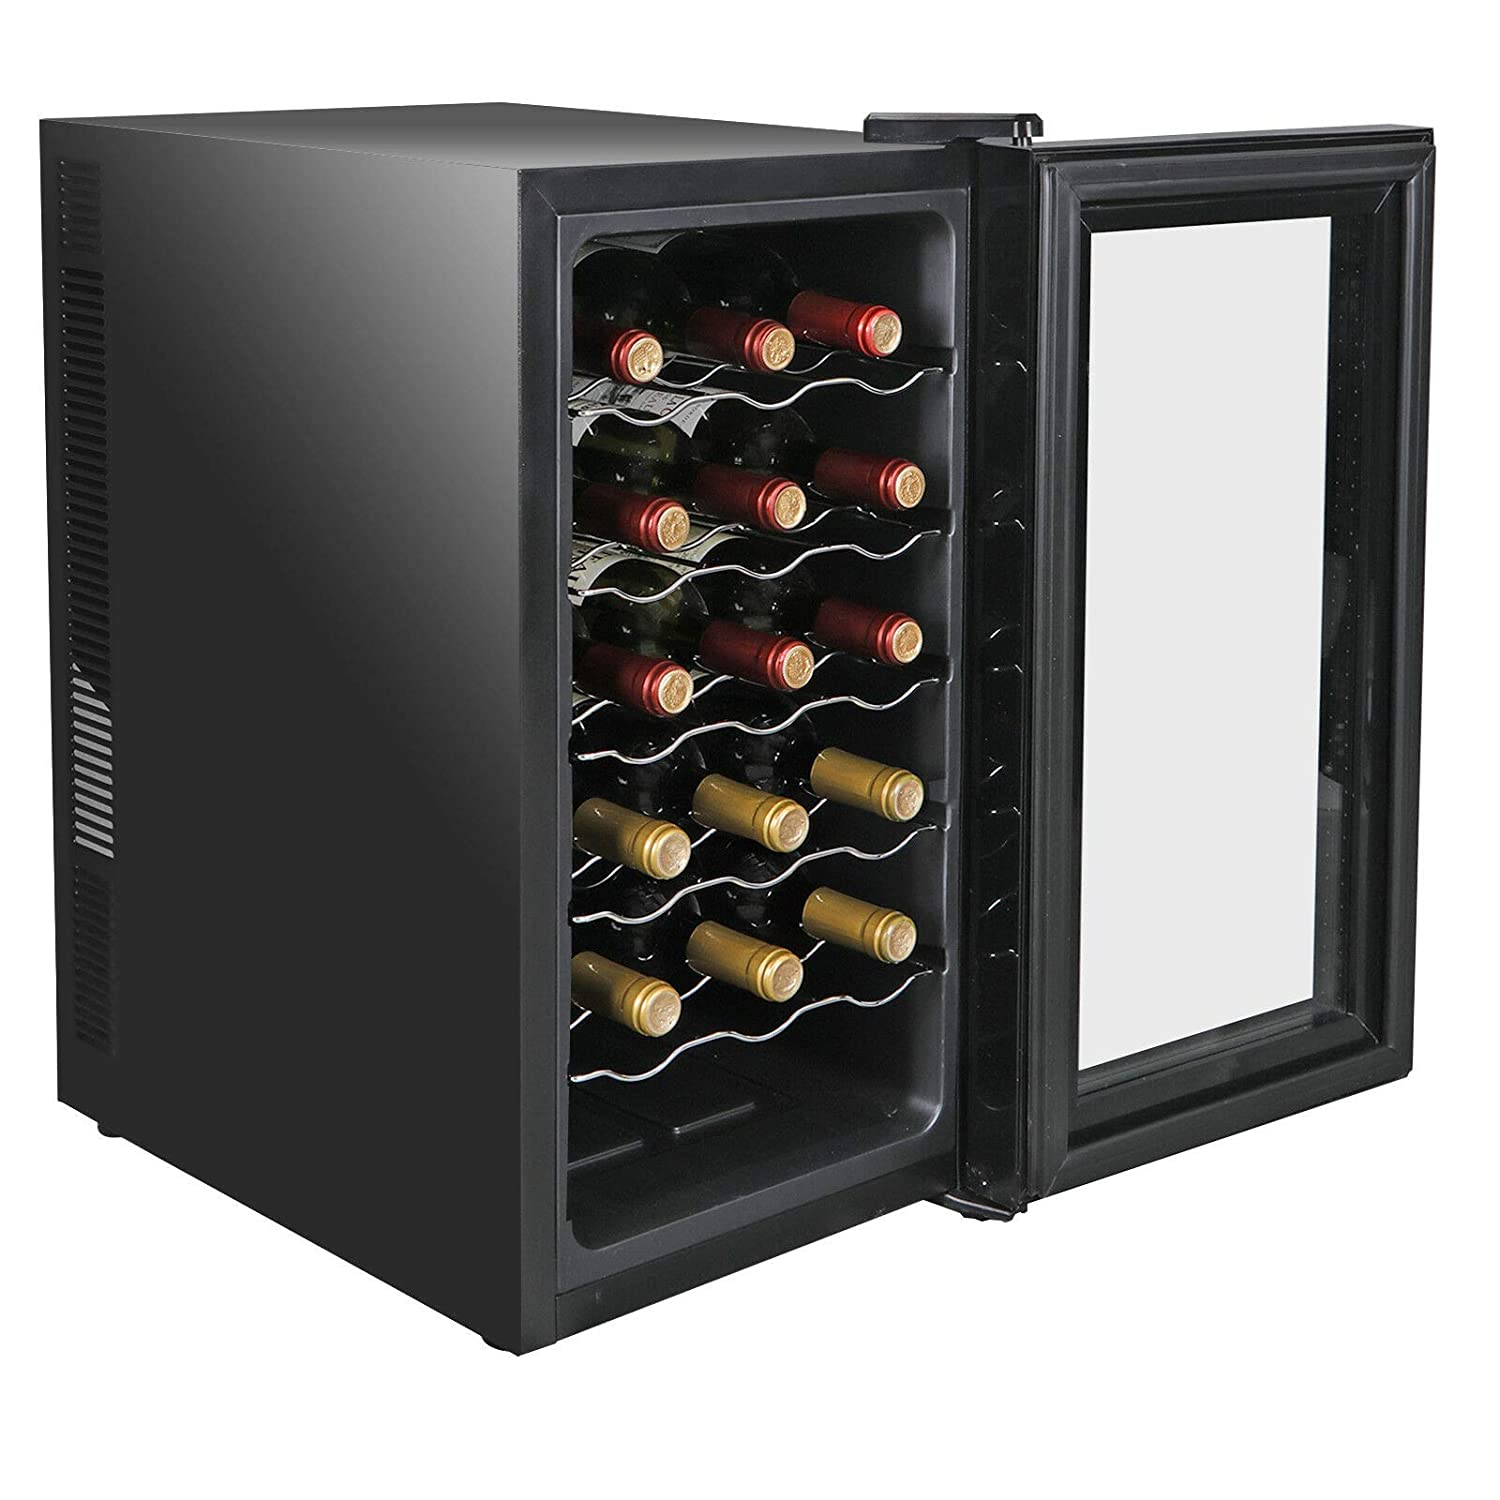 Commercial Home Wine Collection with Refrigerator Wine Cooler Capacity 18 Bottles Storage Thermoelectric Temperature Control Air Tight Seal Free Standing Living room Kitchen Party Office Restaurant